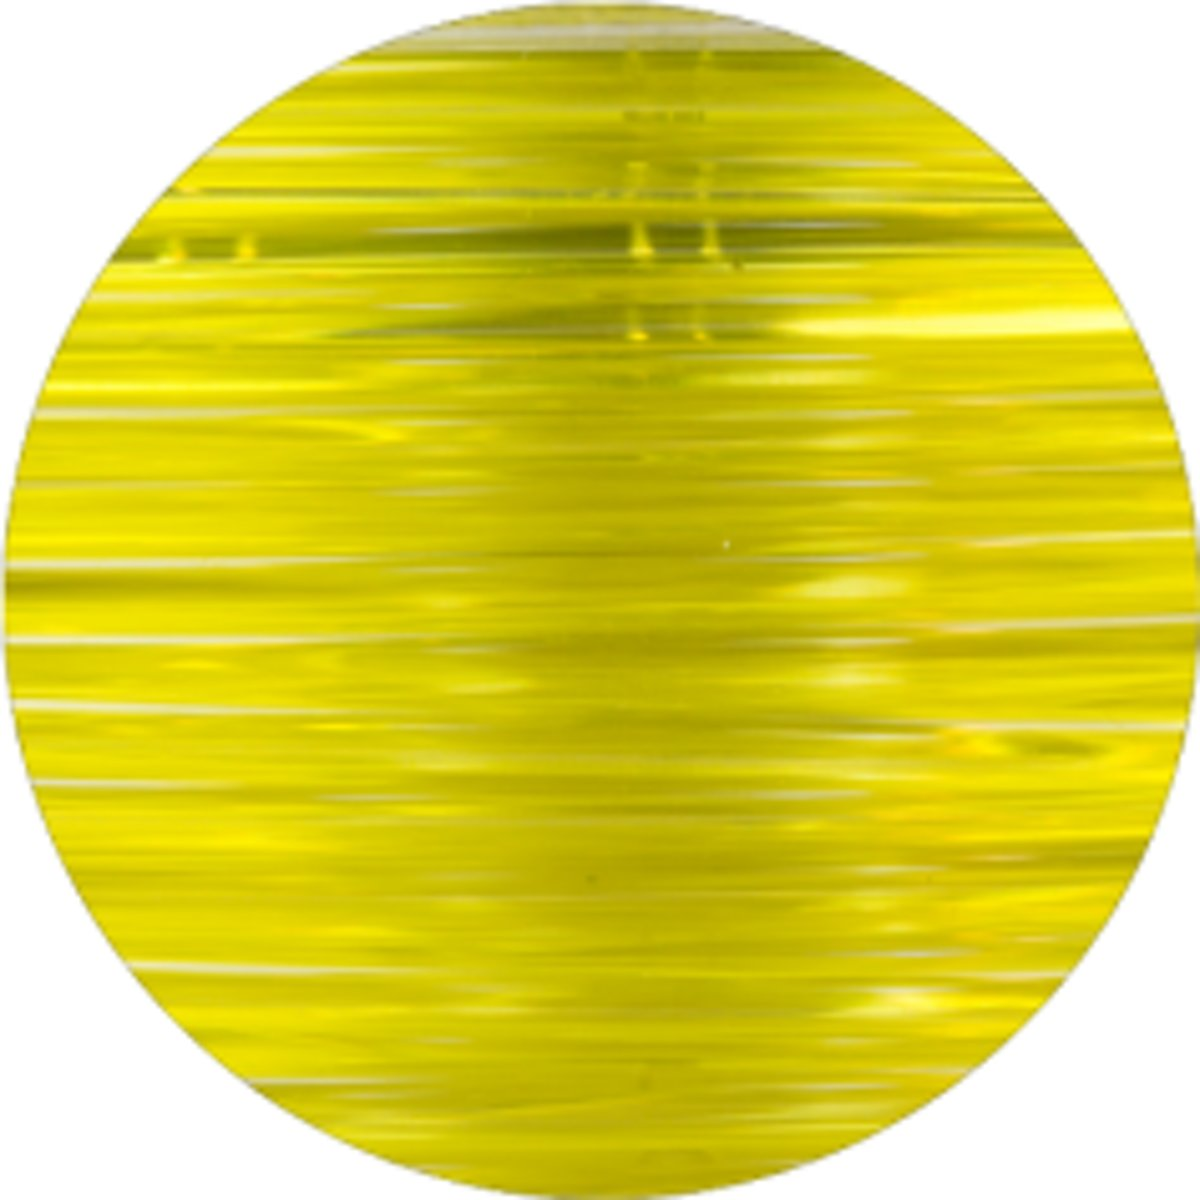 NGEN YELLOW TRANSPARENT 2.85 / 750